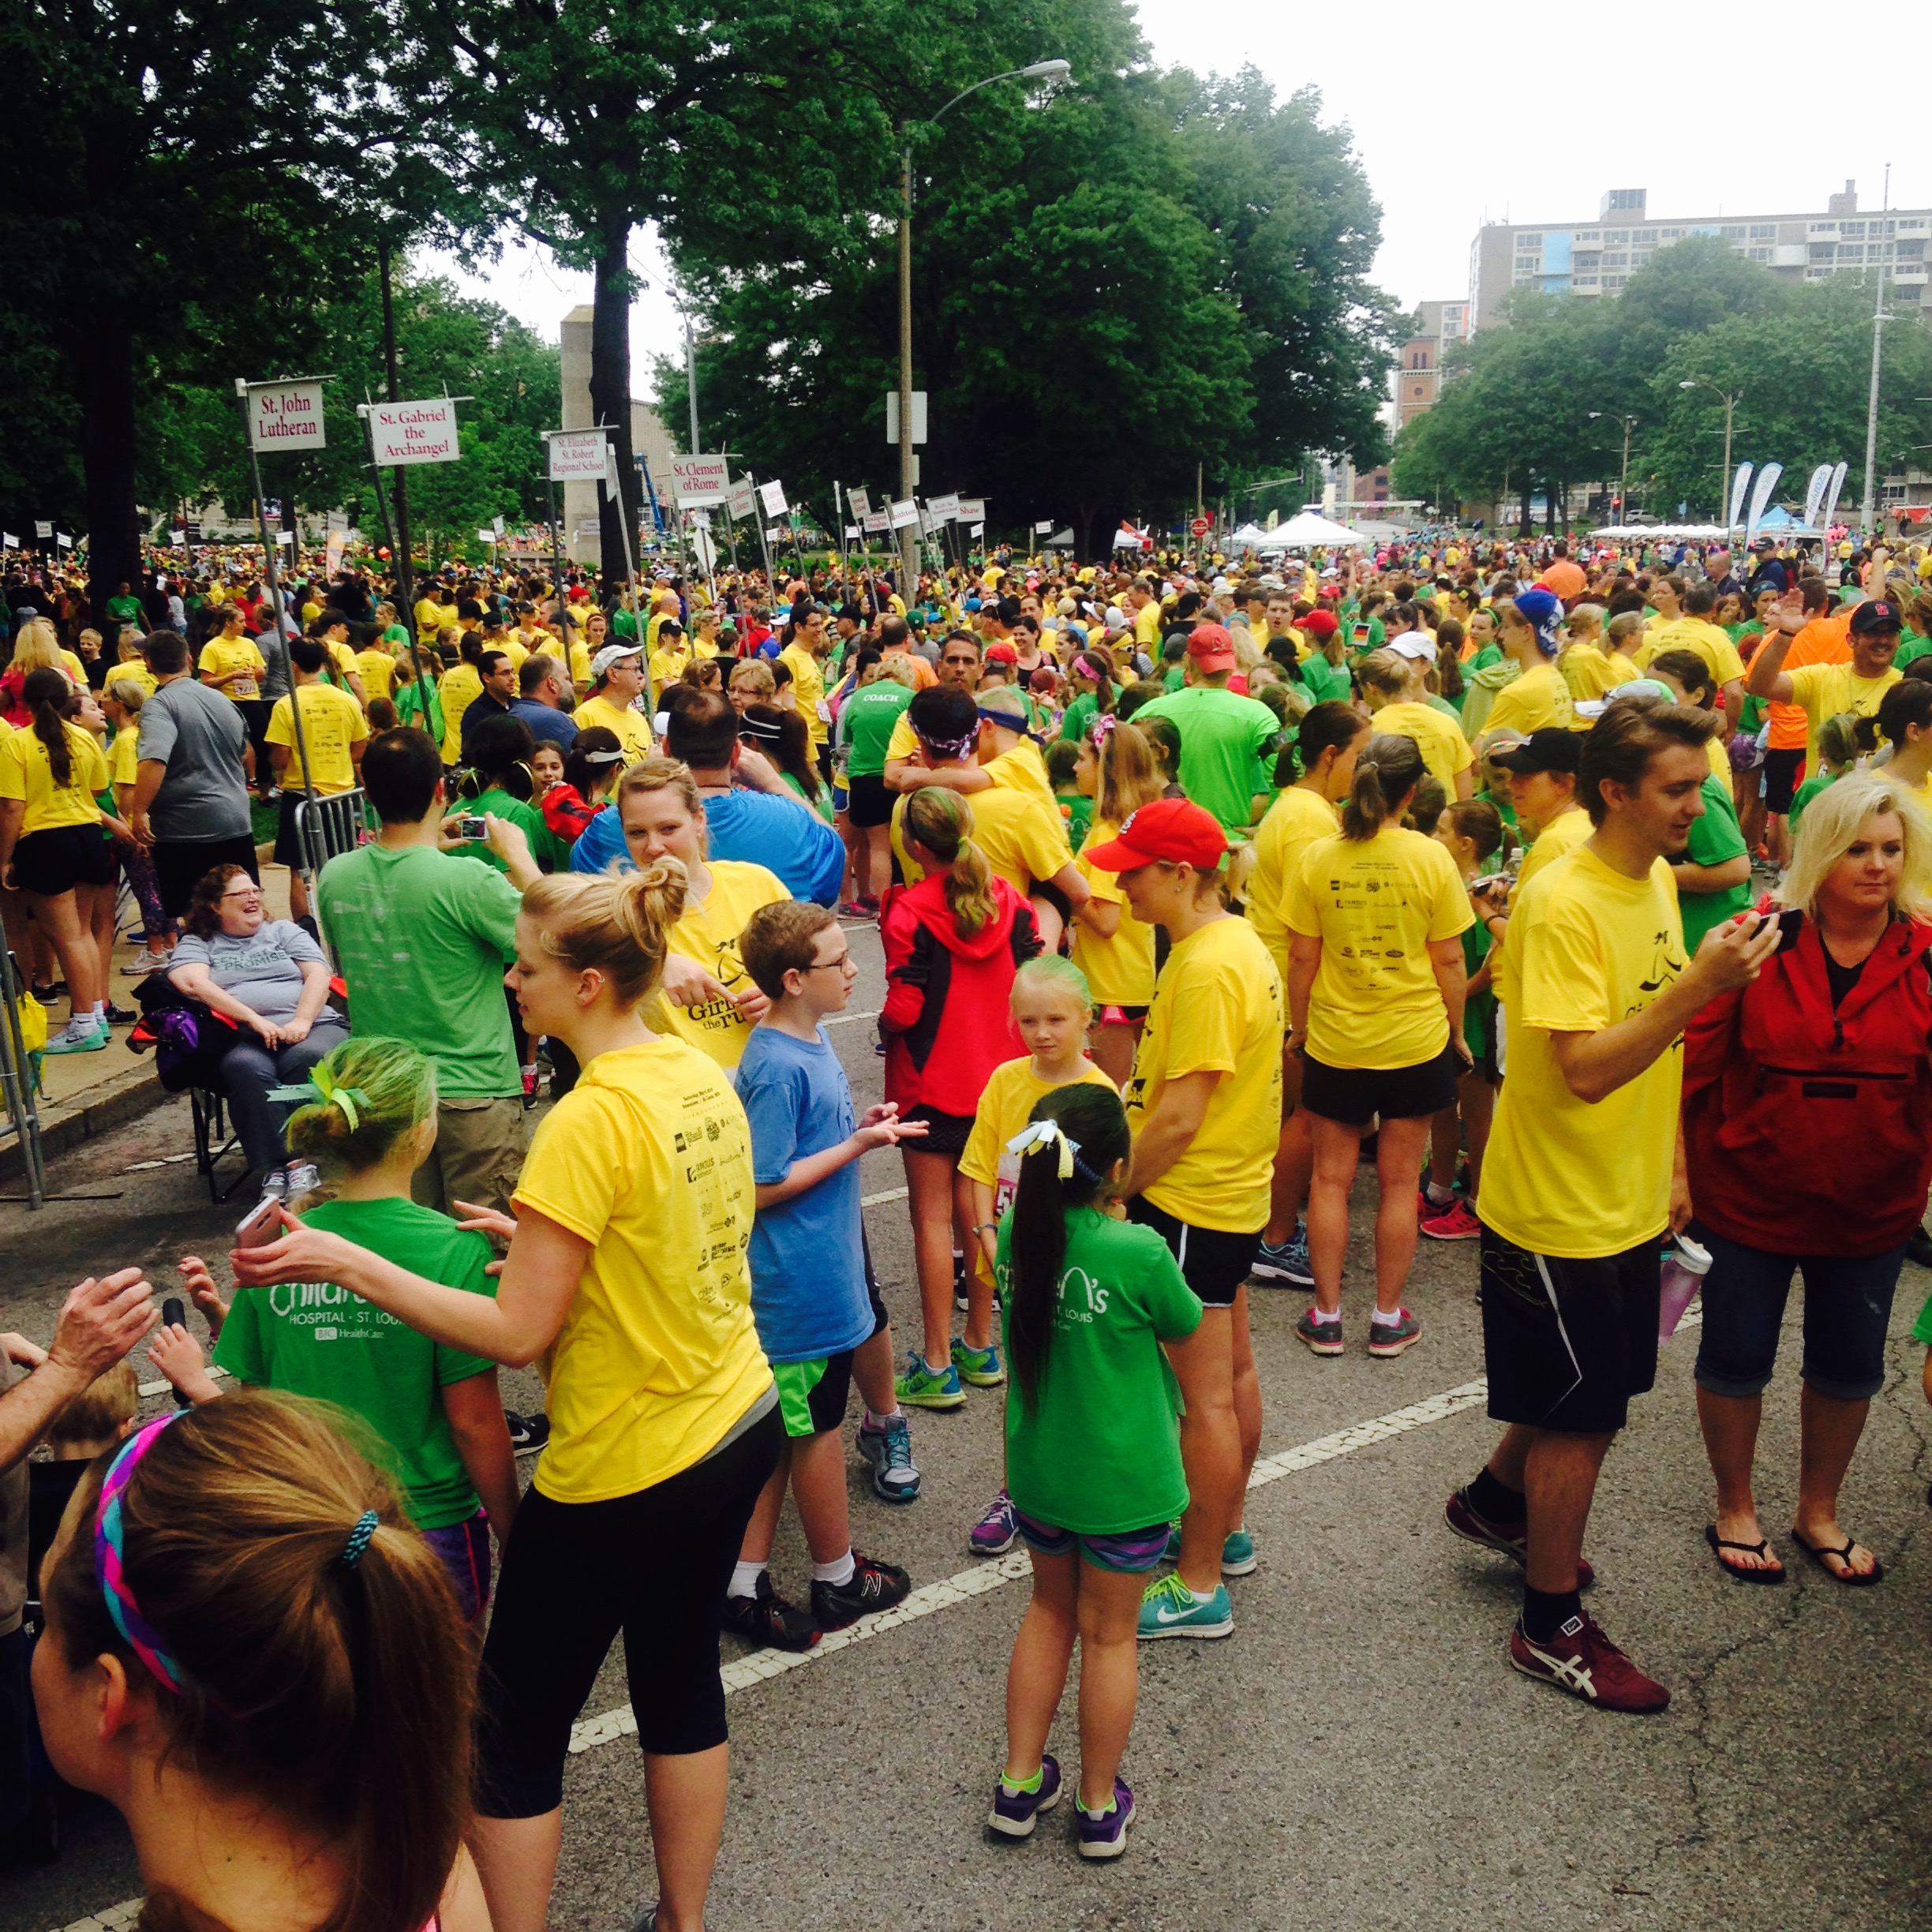 Girls on the Run 5K, one of dozens of race events to bring tens of thousands downtown. (Photo by Debbie Monterrey)